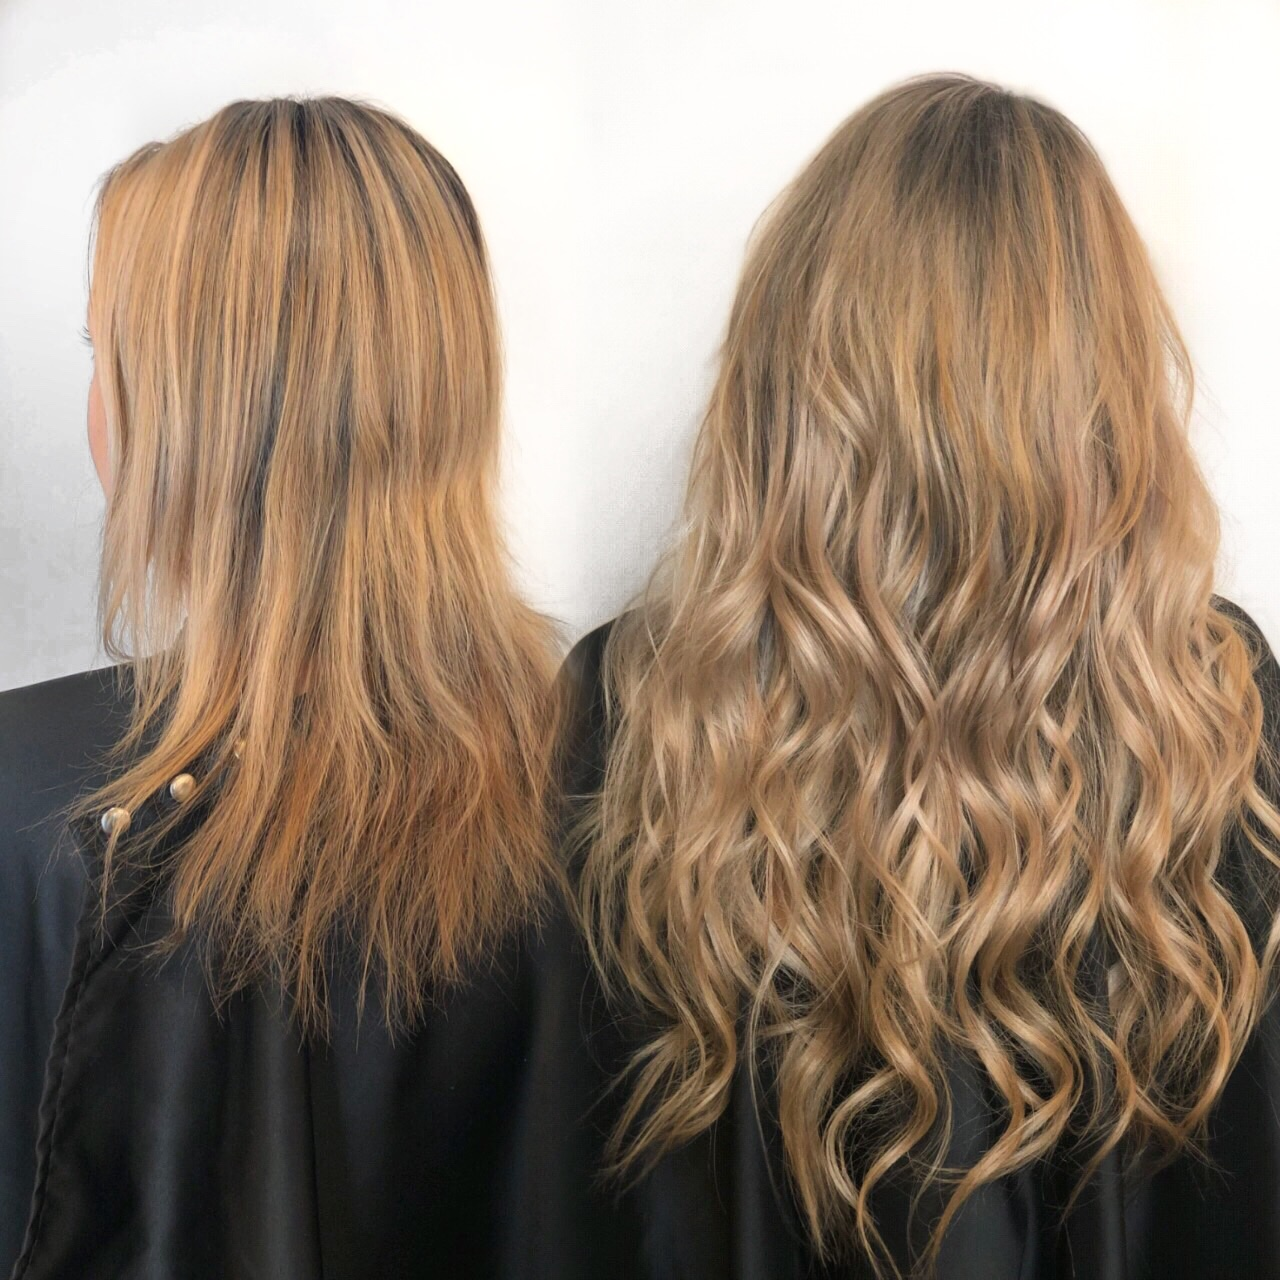 Before & After: 3 rows for length and volume